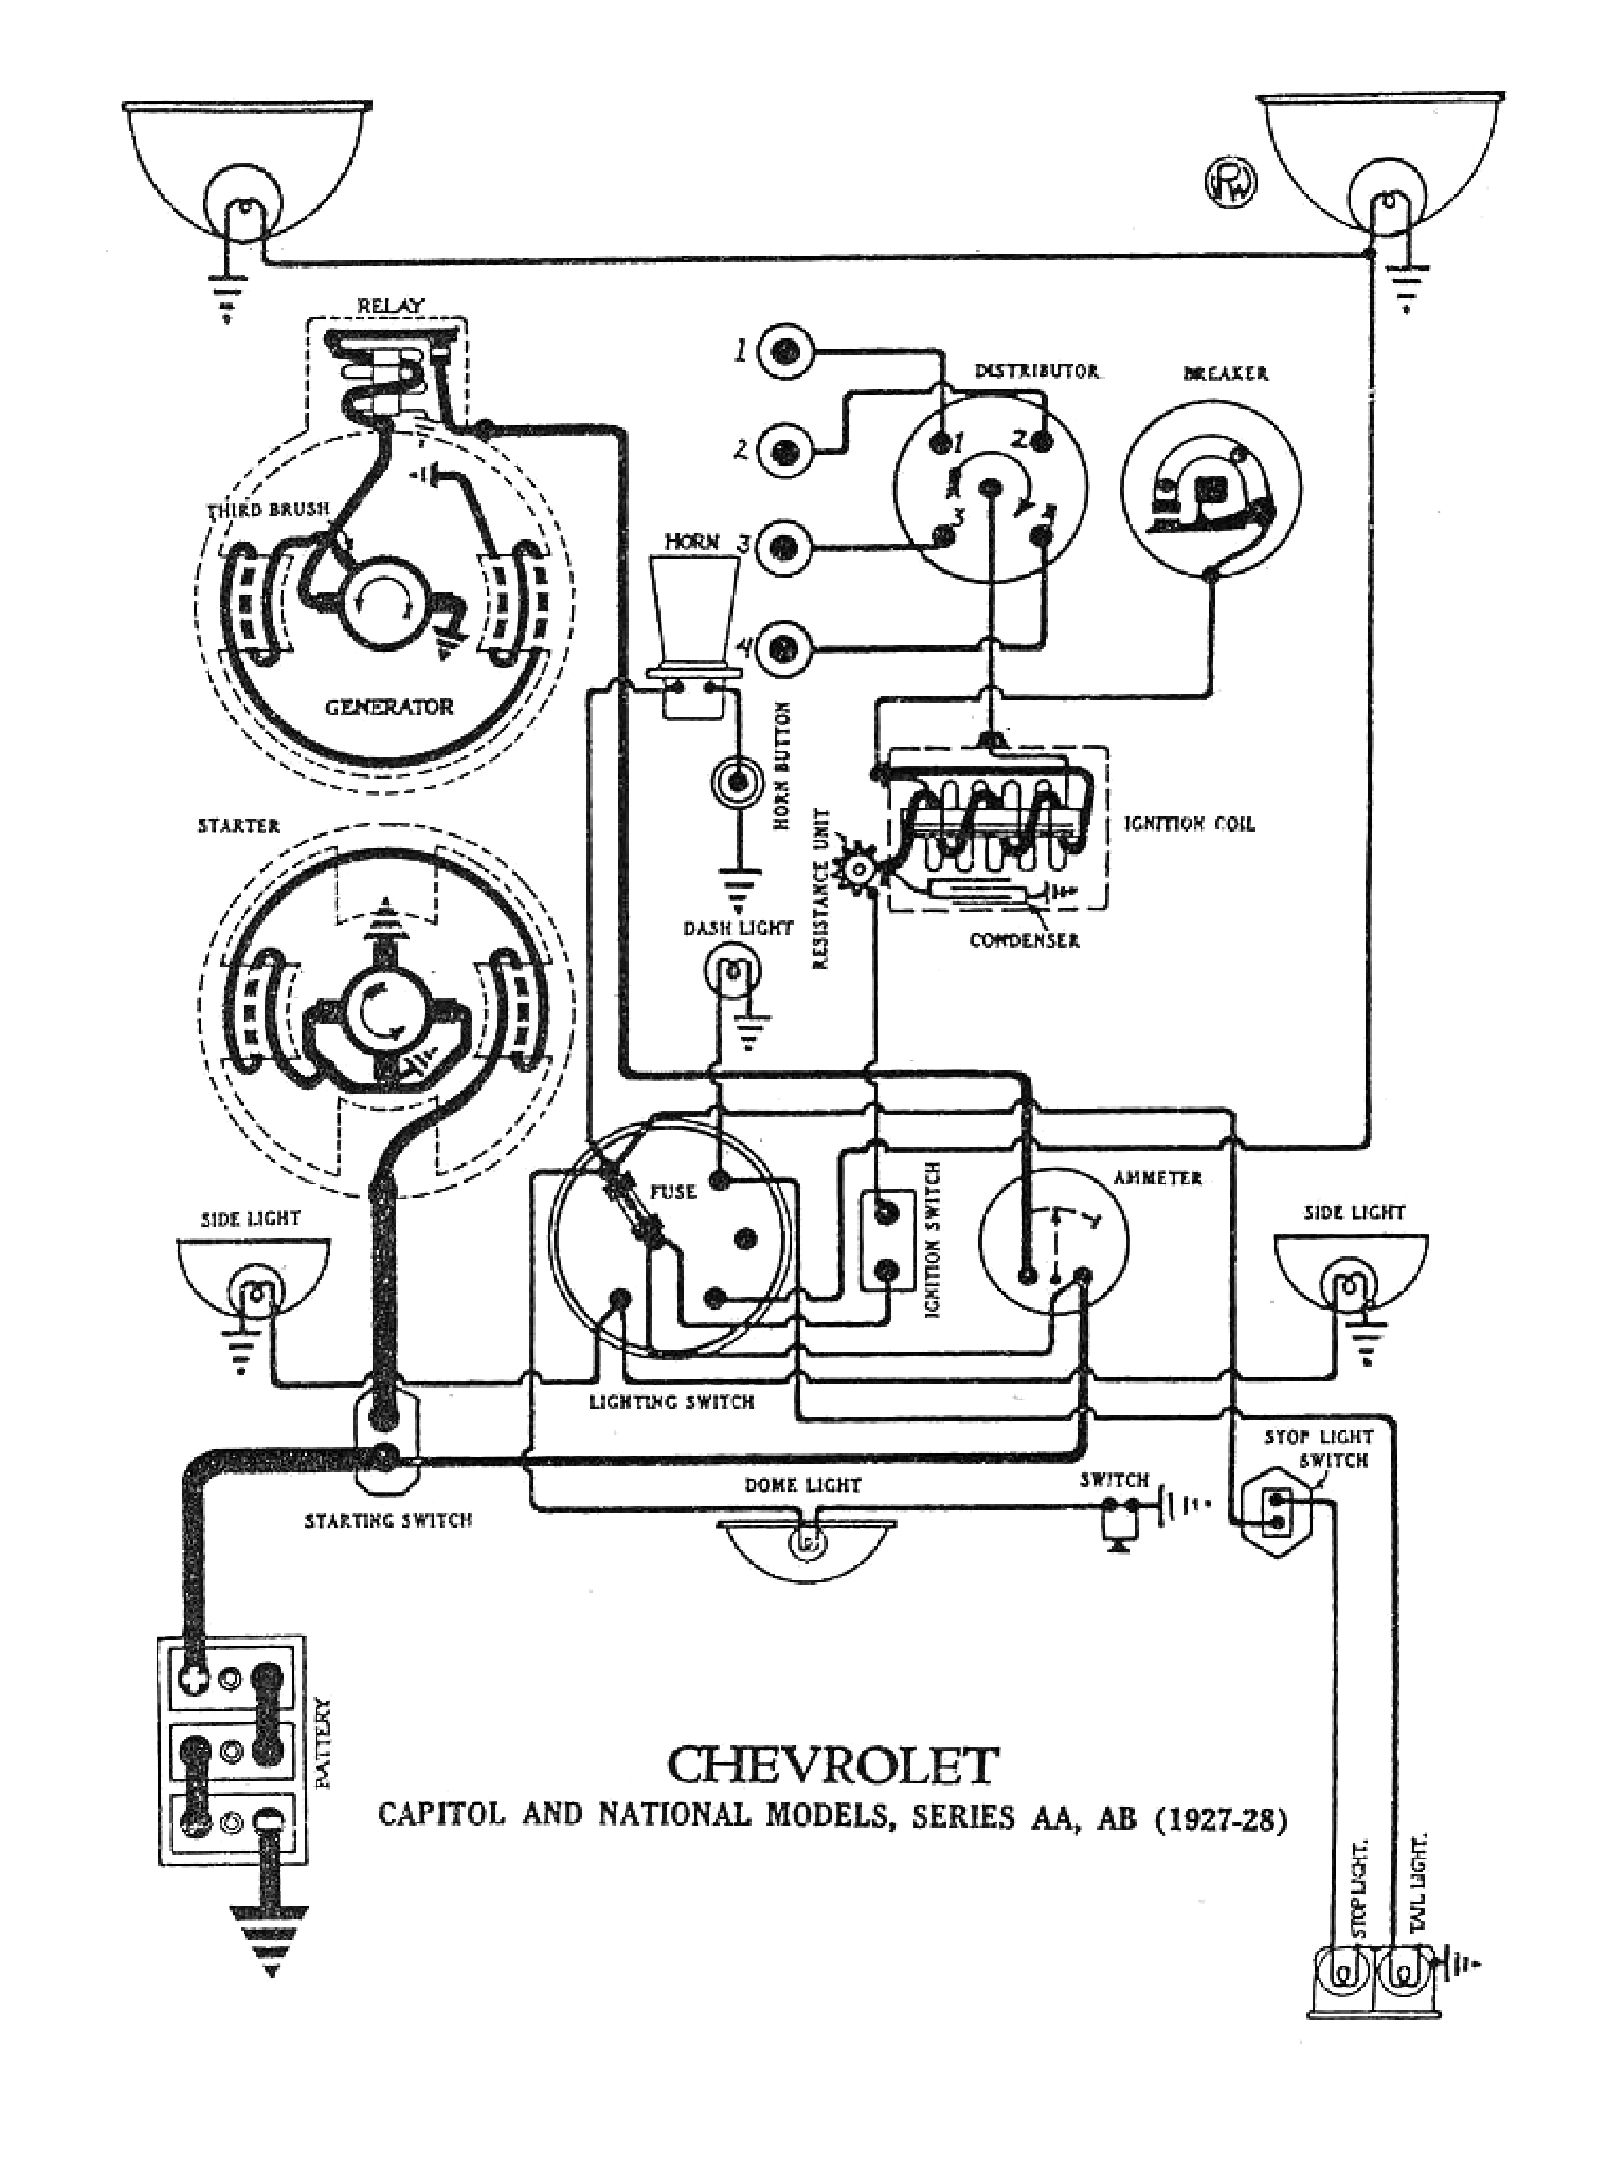 1930 Harley Electrical Diagram | Online Wiring Diagram on honda wiring diagrams online, harley wiring diagrams pdf, ford wiring diagrams online, bmw wiring diagrams online, harley 1968 xlch wiring-diagram, flstc wiring diagram online, harley parts online,